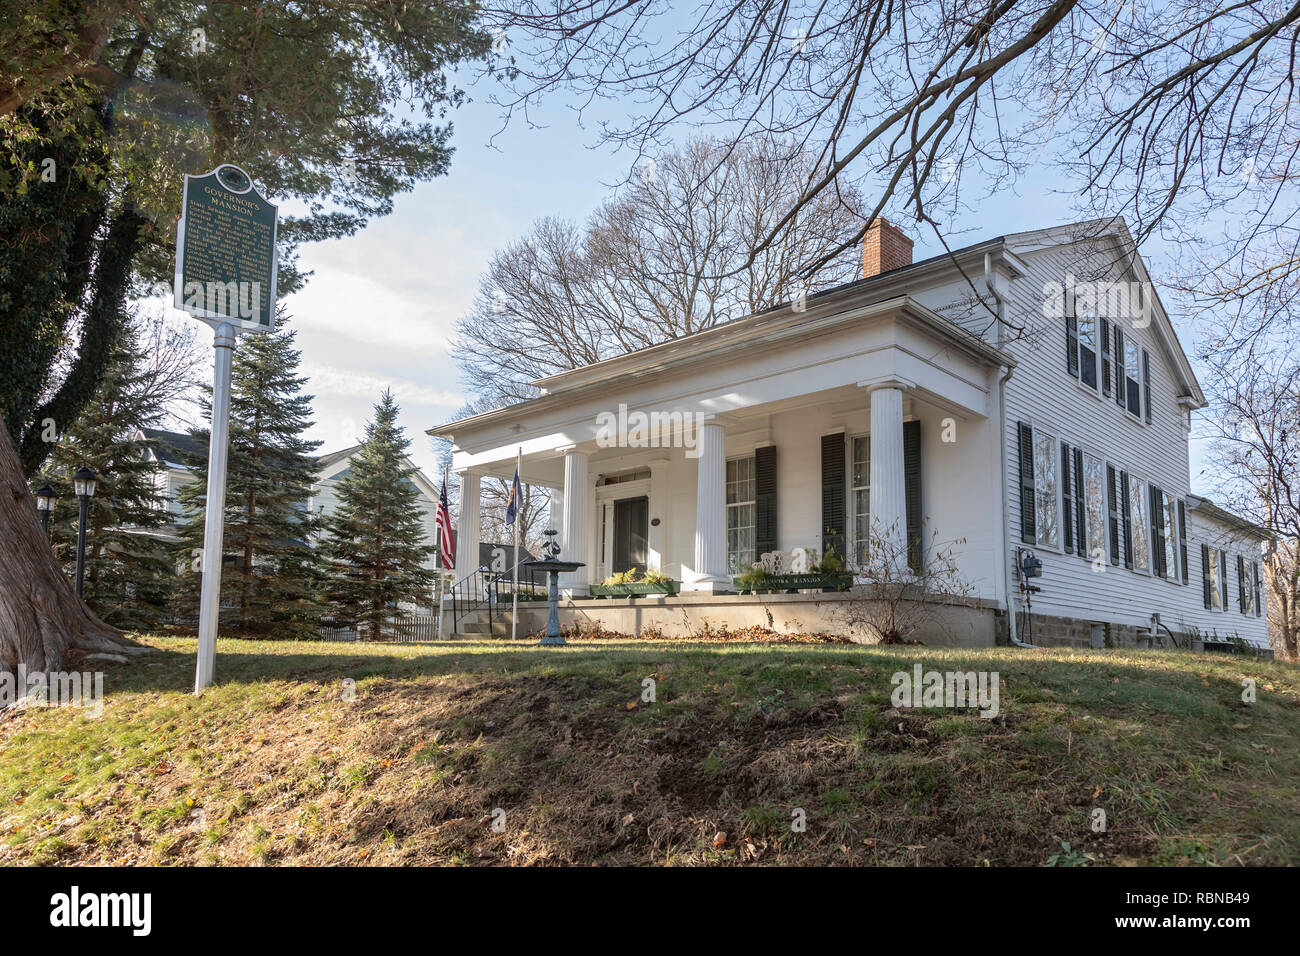 Marshall, Michigan - The Governor's Mansion, built in 1839 when the city leaders expected Marshall to be designated Michigan's capital. Instead, Lansi - Stock Image